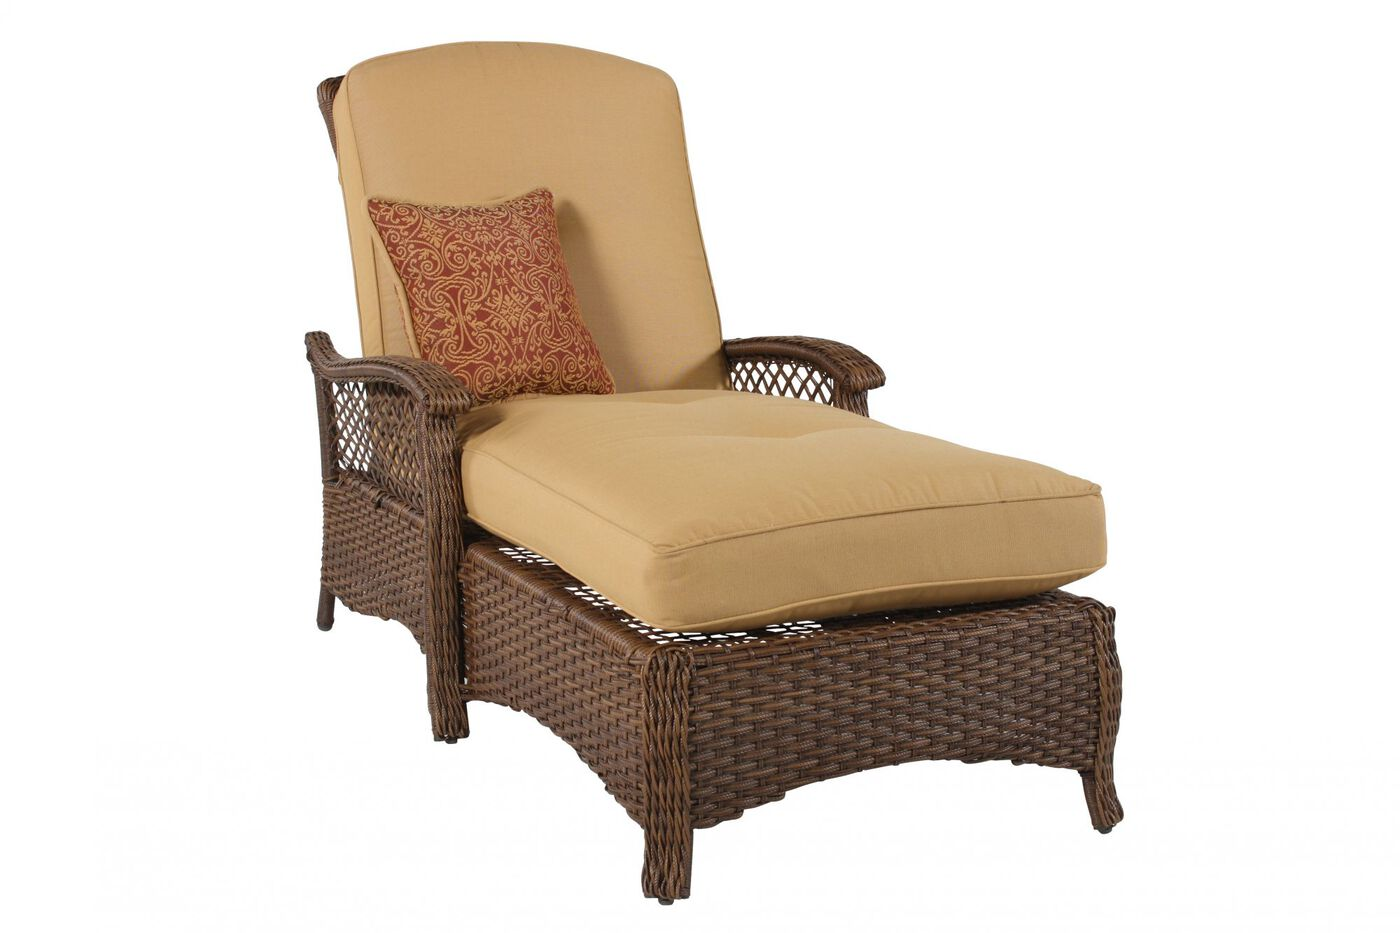 agio veranda woven chaise lounge mathis brothers furniture ForAgio Chaise Lounge